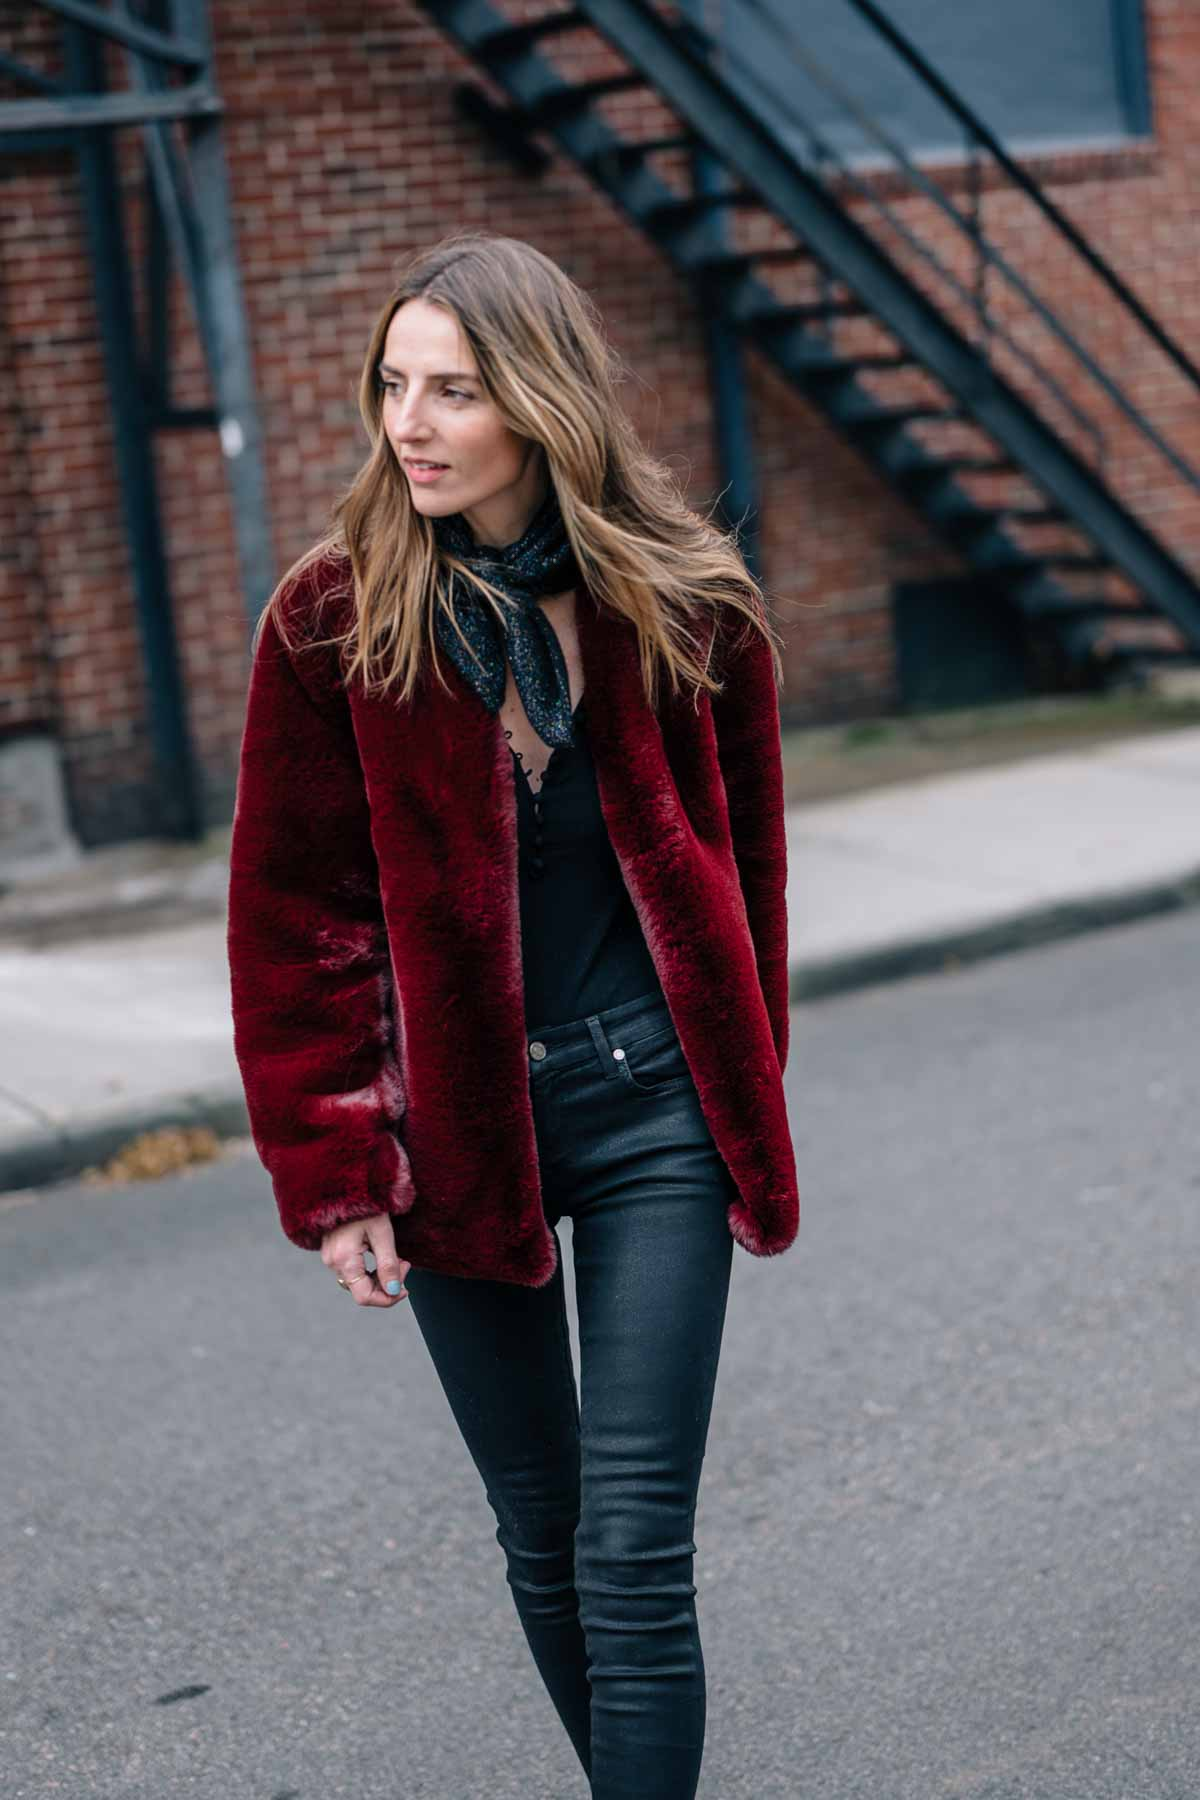 Jess Ann Kirbey styles a burgundy faux fur jacket with 7 for all man kind coated skinny jeans from Shop Bop in Newport, Rhode Island